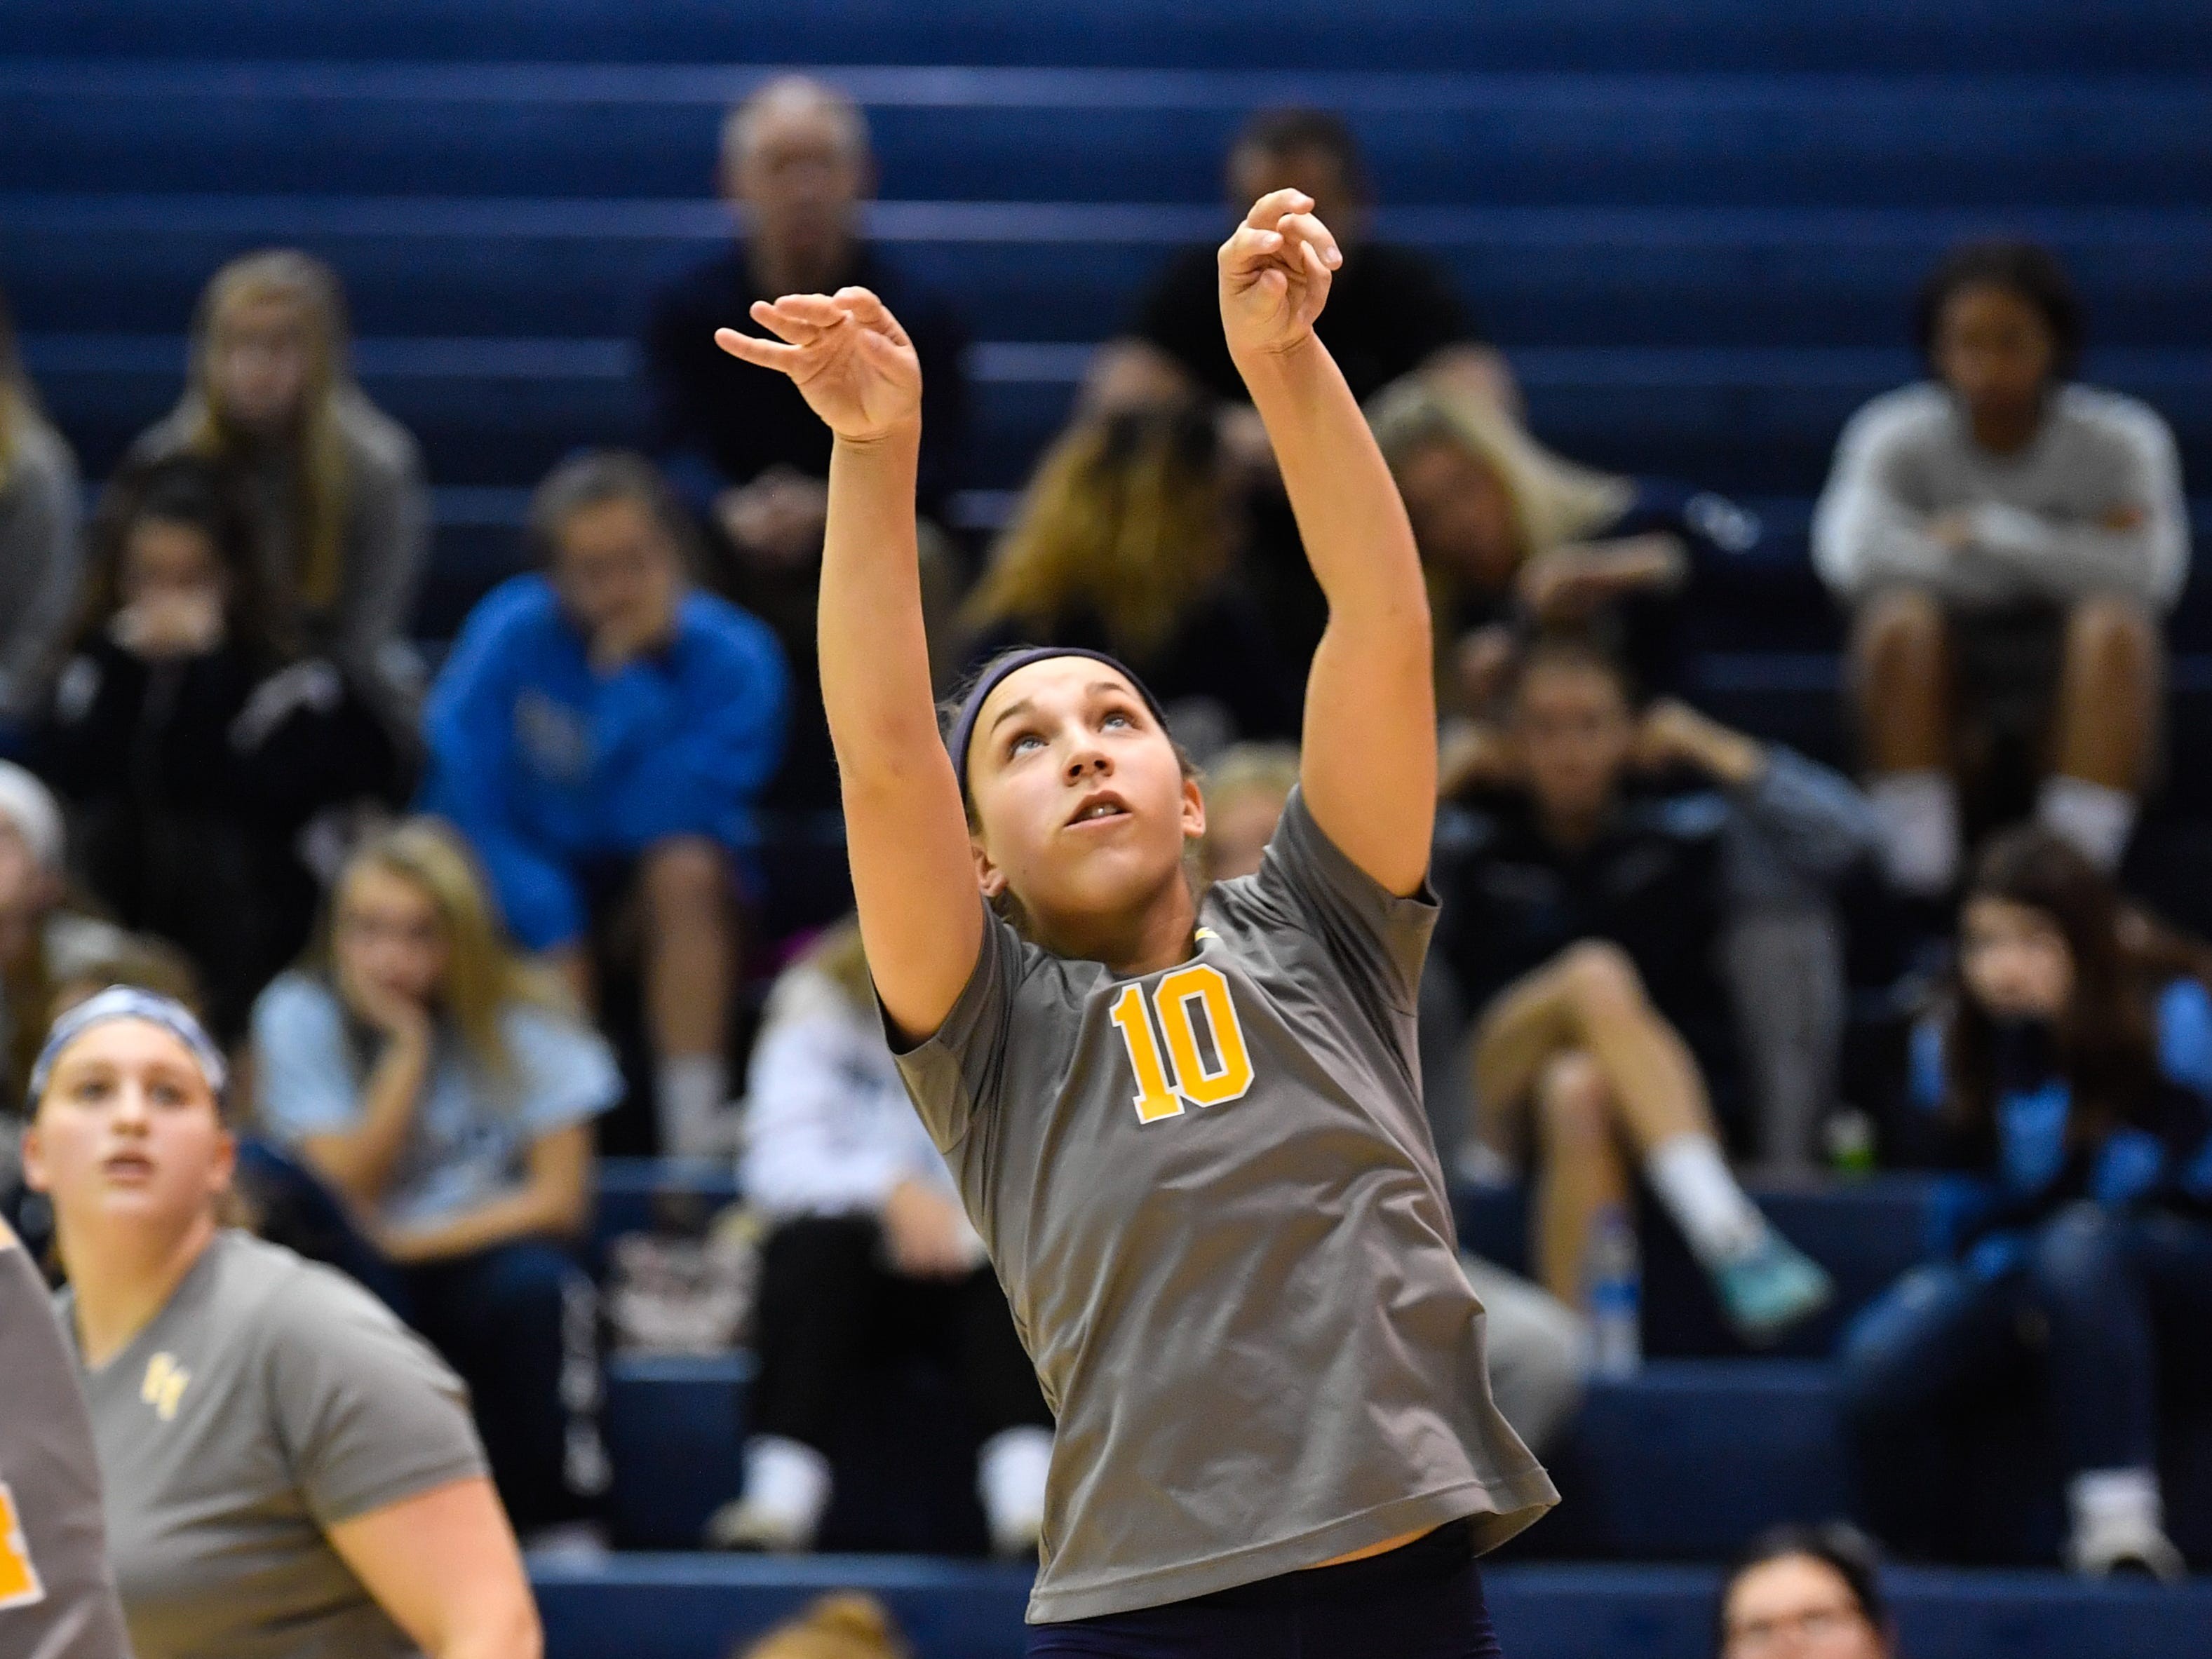 Katie Lehman (10) sets the ball during the YAIAA league volleyball tournament semifinals between Eastern York and Delone Catholic, Tuesday, October 23, 2018. The Squirettes defeated the Golden Knights 3-2.